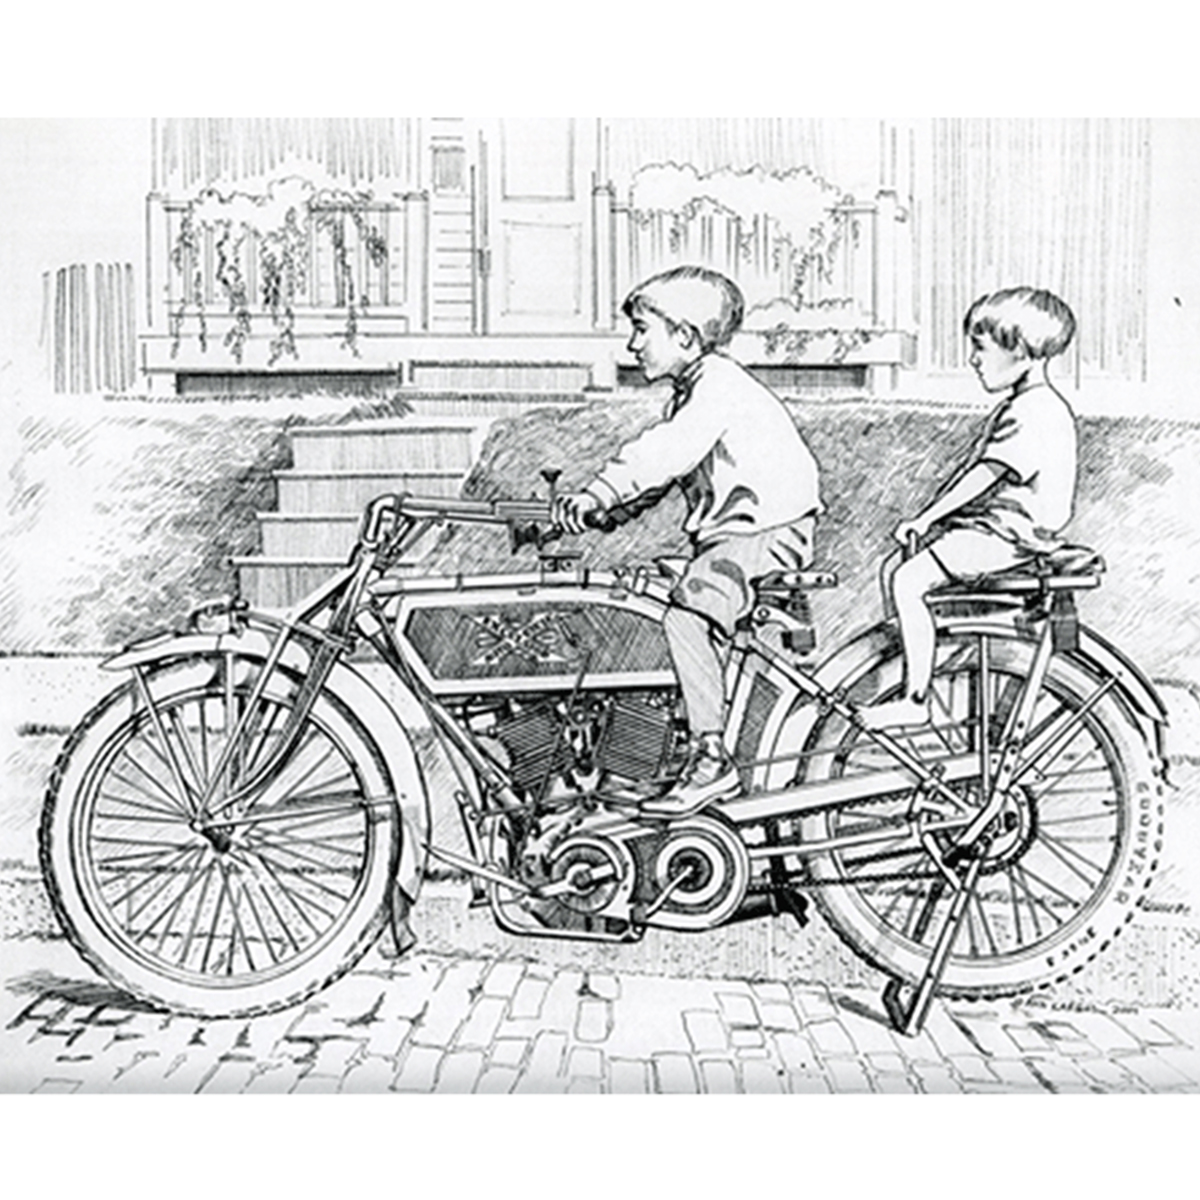 moto art. 1-boys-on-excelsior-pencil moto art